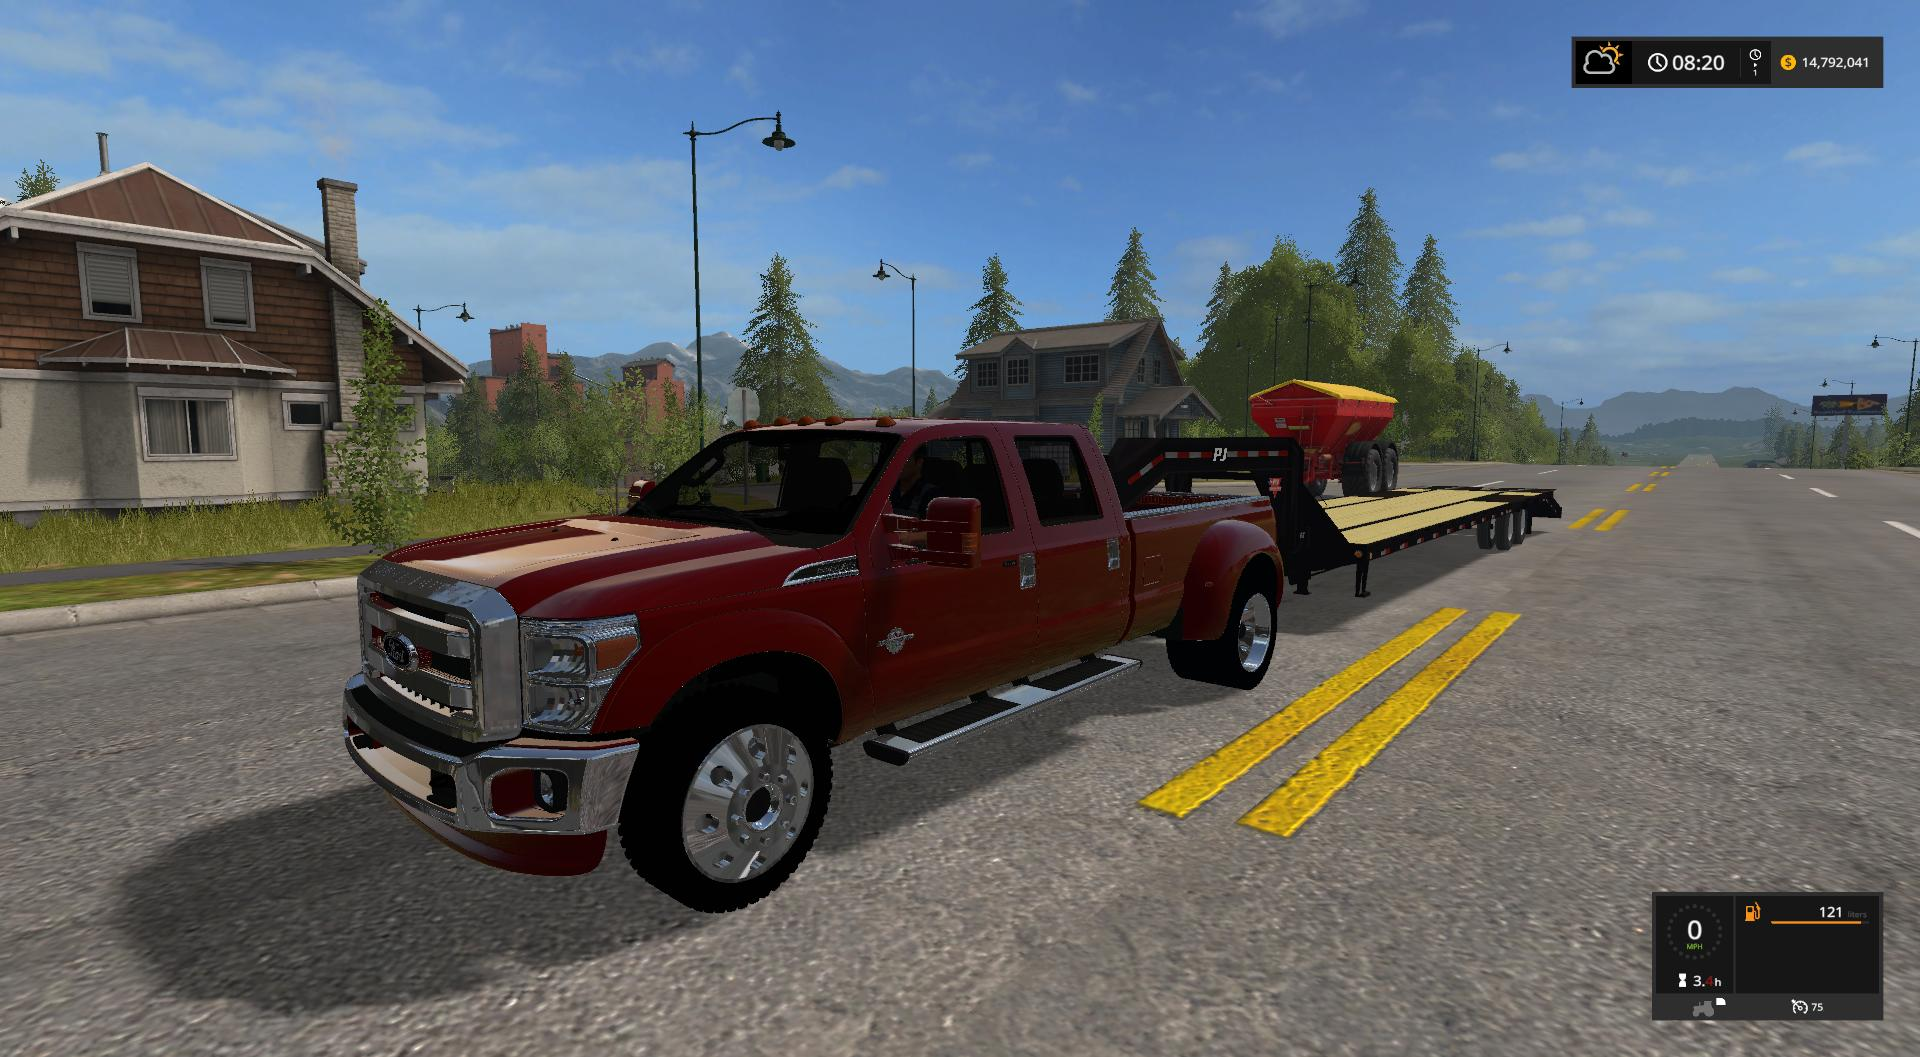 2015 Ford Truck Colors >> 2016 FORD F-350 V2 FS17 - Farming Simulator 17 mod / FS 2017 mod